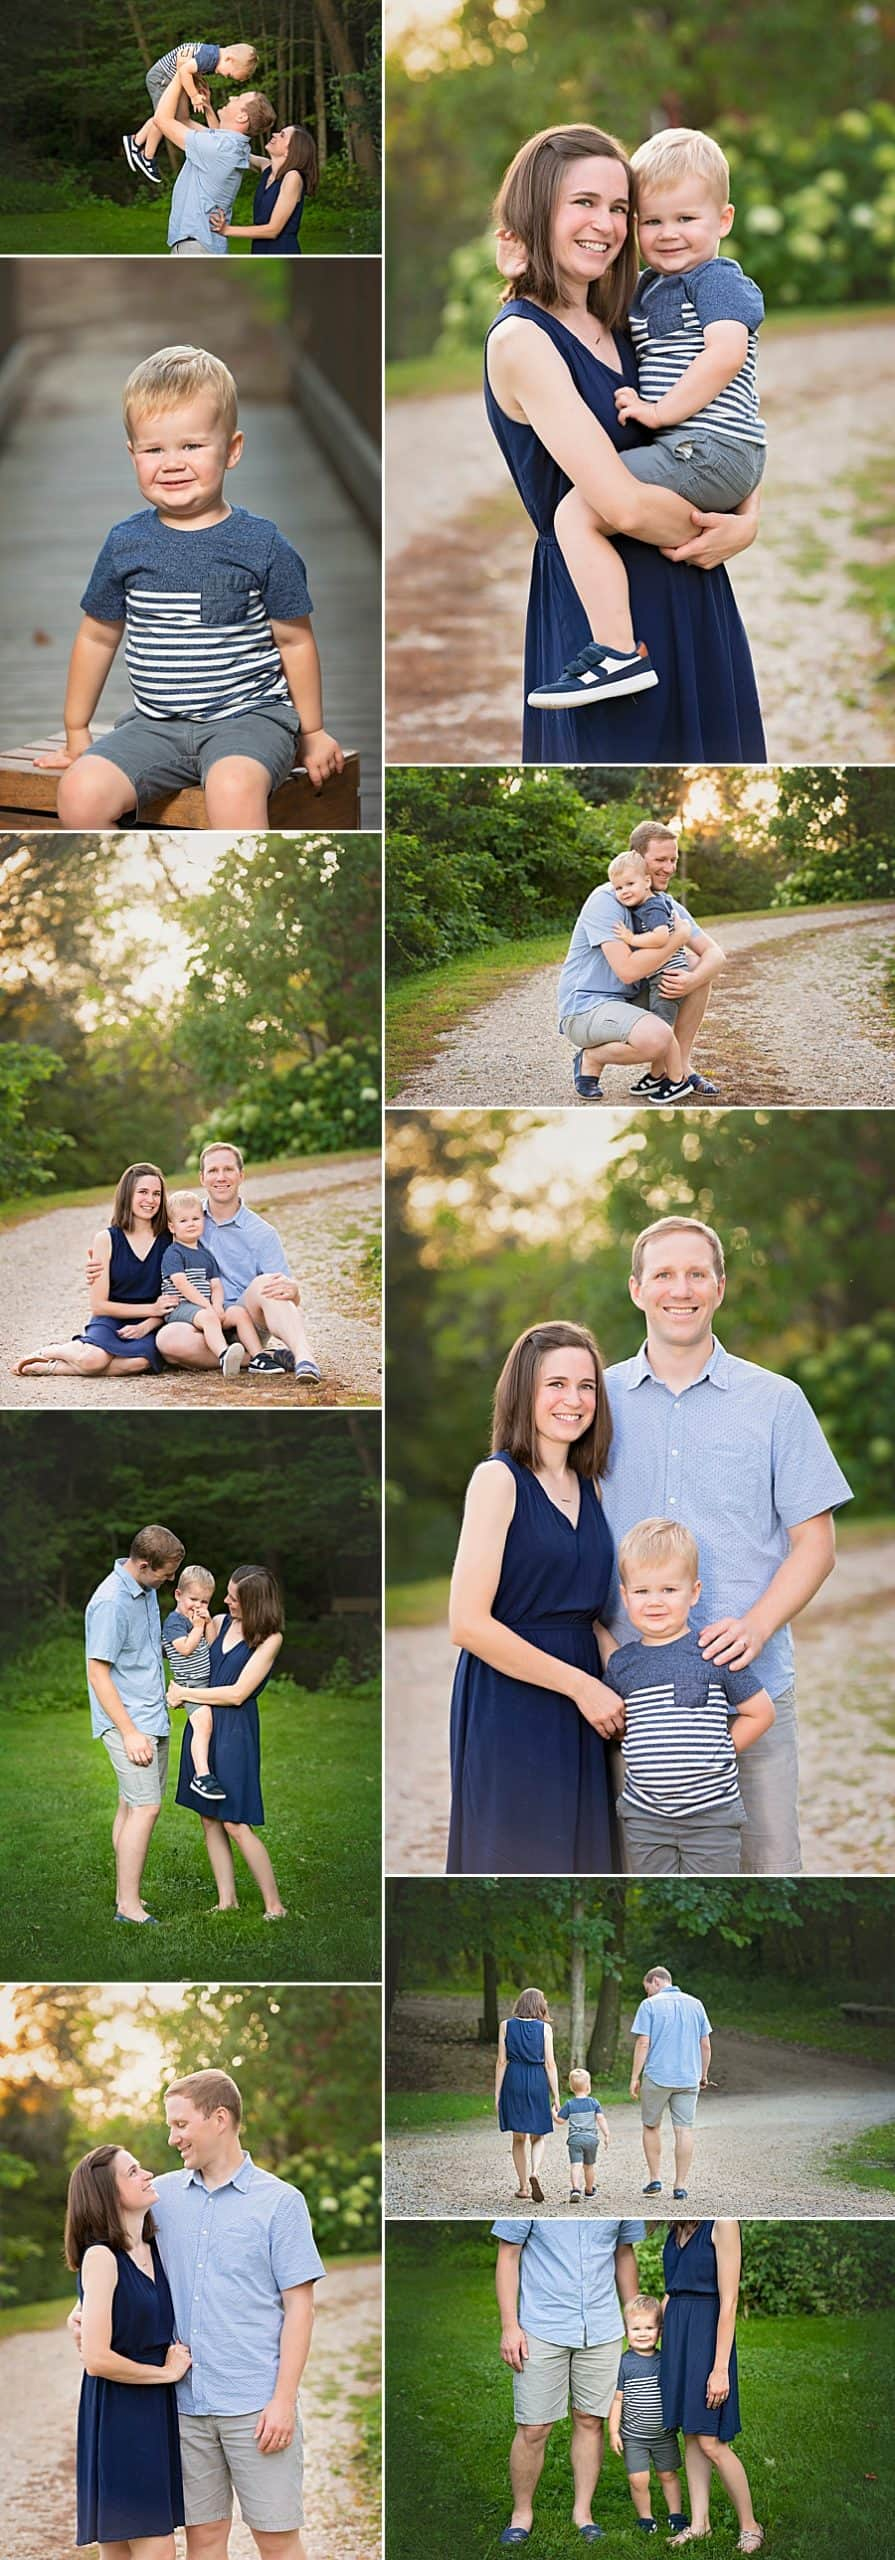 Slinger Family Photographer Session at Richfield Historical Society